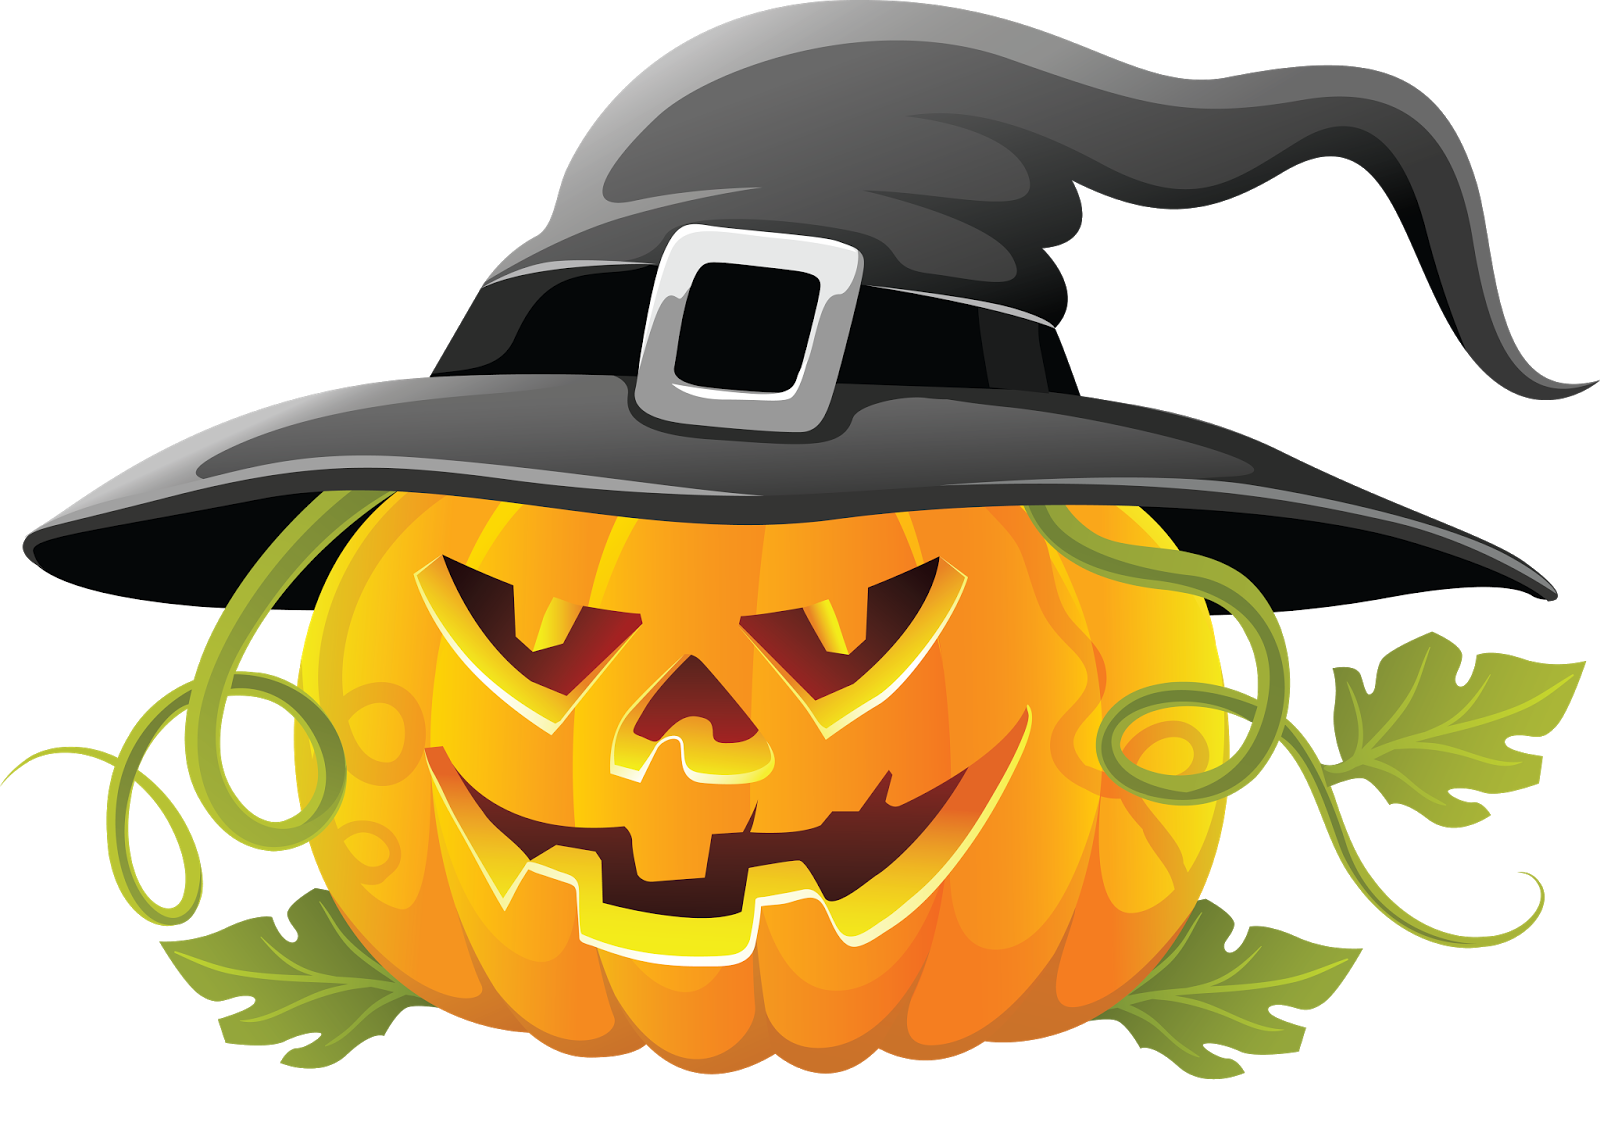 Scary halloween pumpkin clipart image freeuse stock Cub Scout Pack 310 - La Crescenta and Tujunga Valley, California ... image freeuse stock